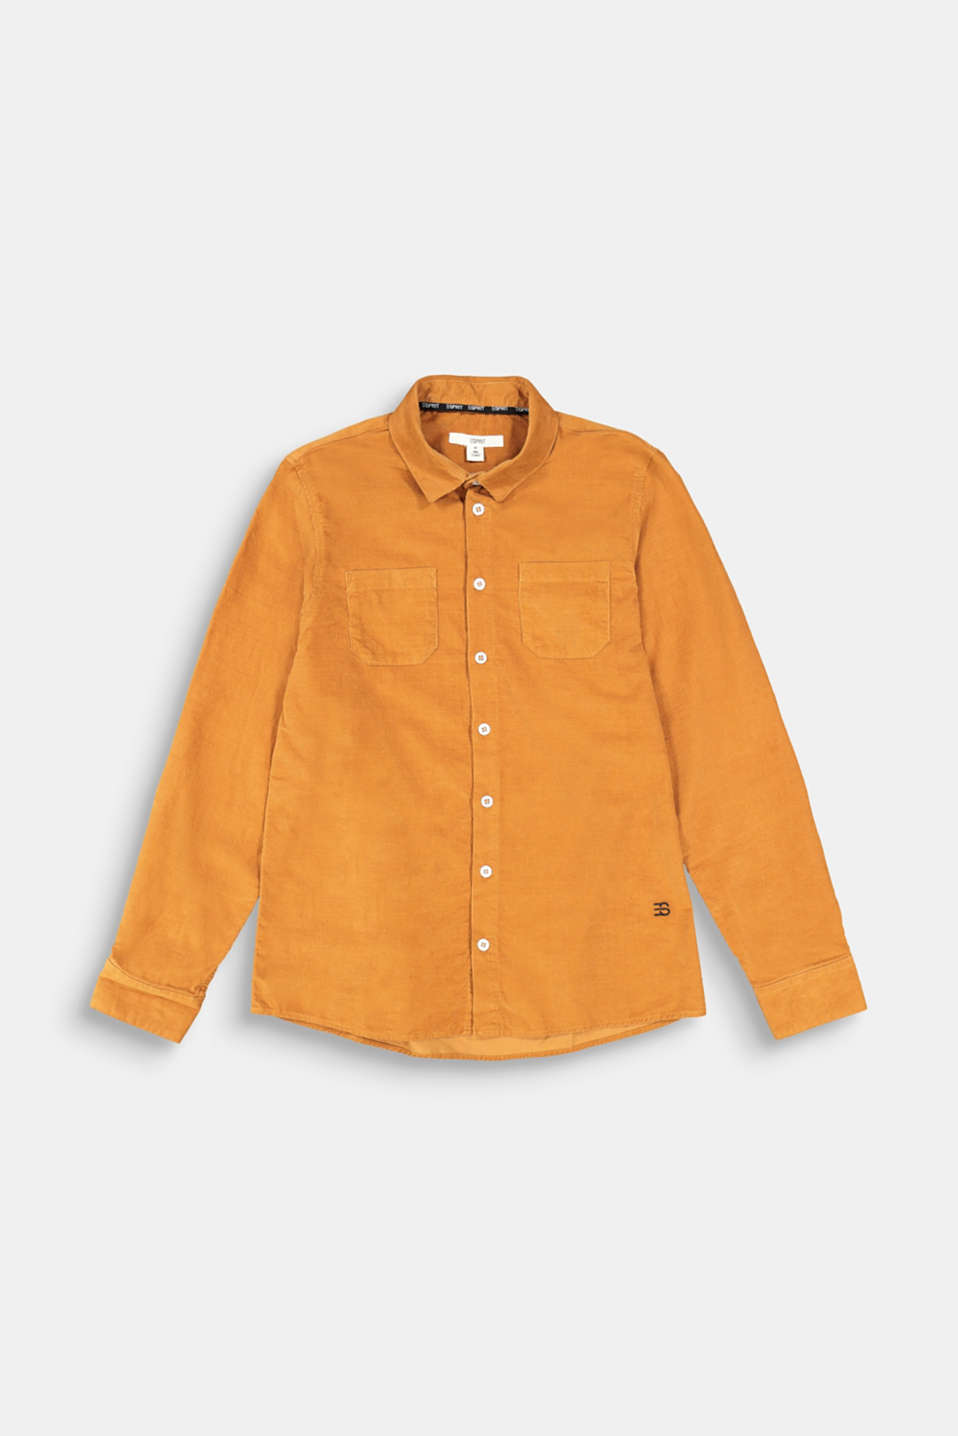 Esprit - Needlecord shirt in 100% cotton